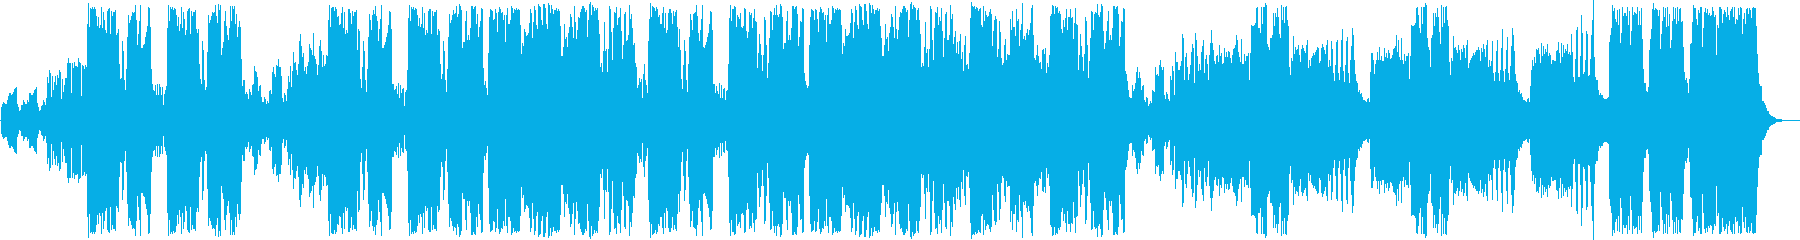 Marriage march / Mendelssohn's reproduced waveform